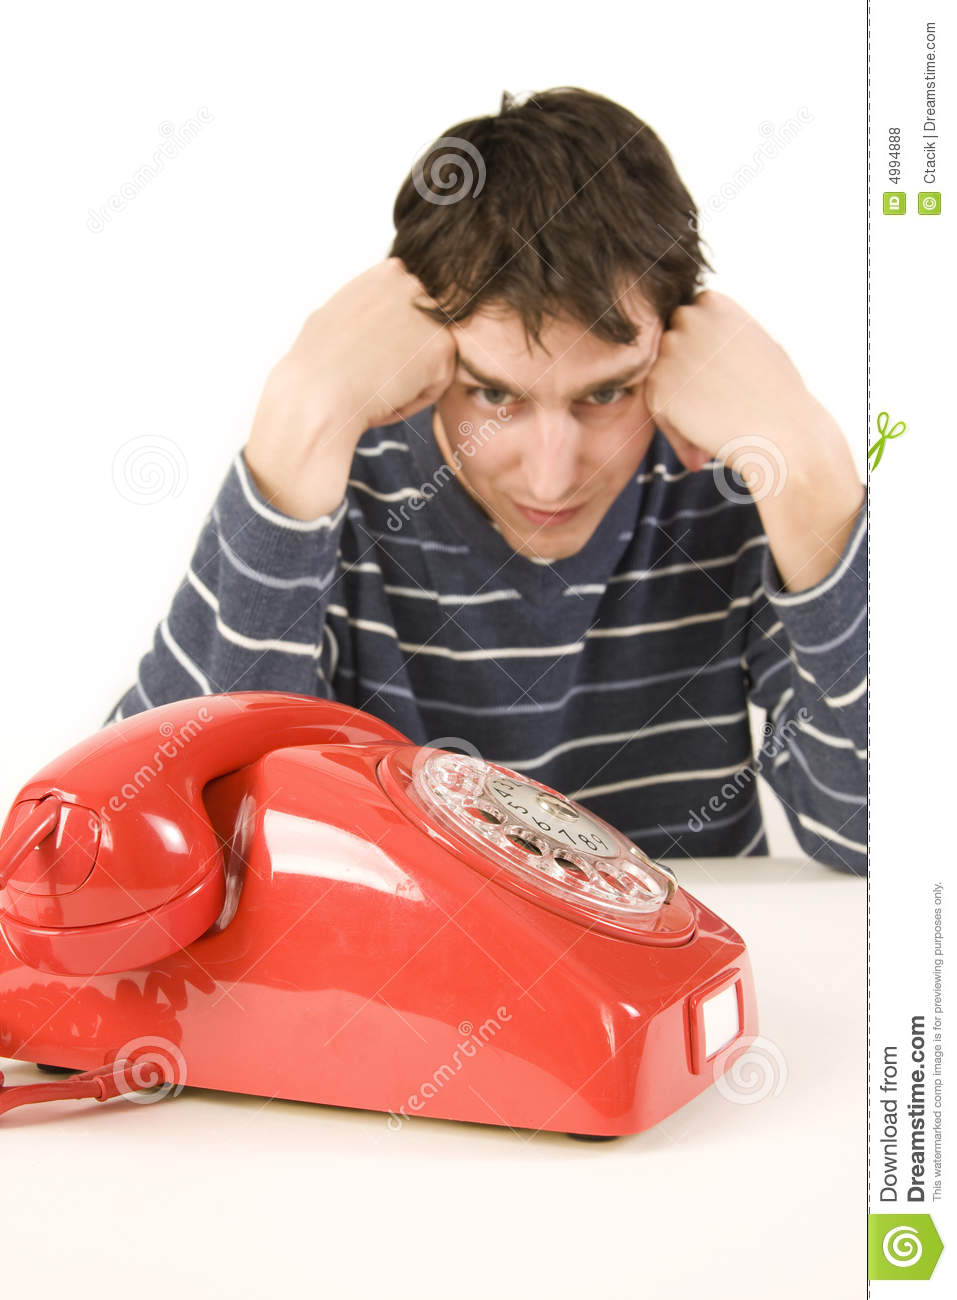 Man waiting for phone call